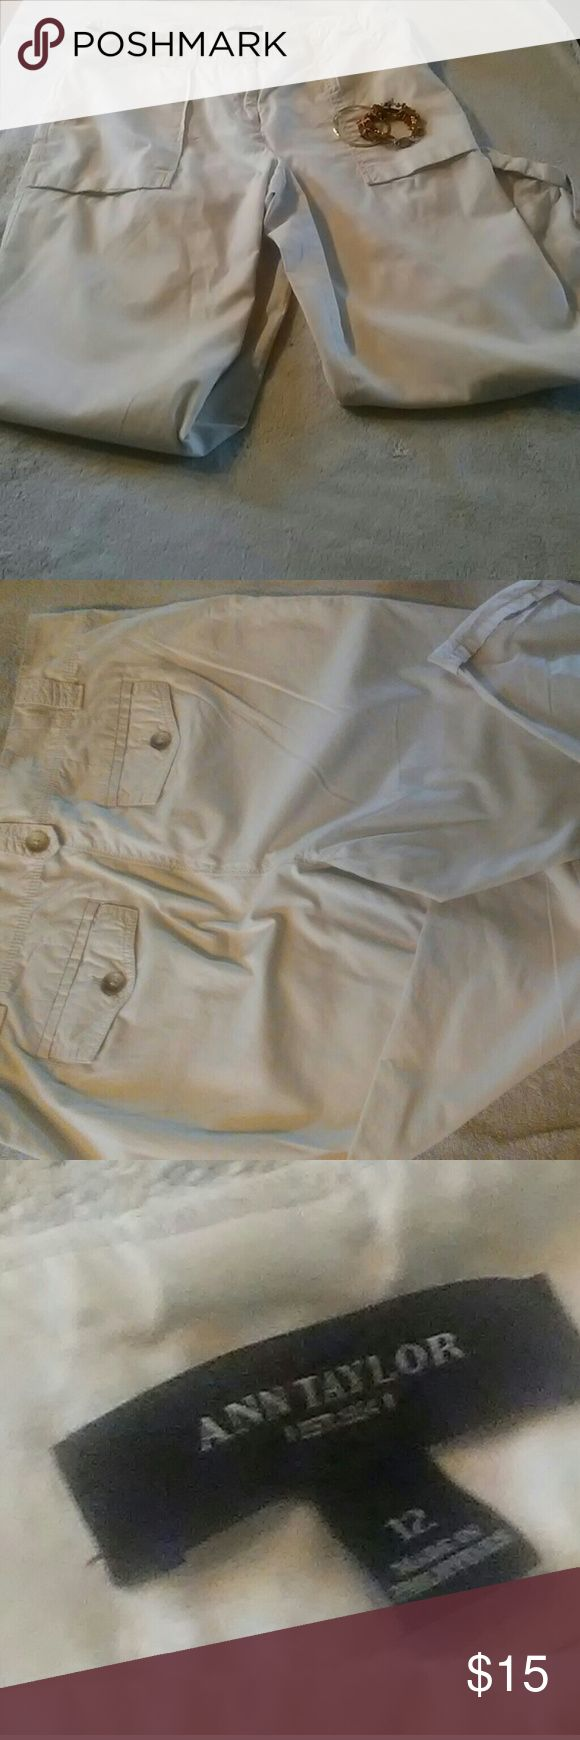 Ann Taylor Capri pants Ann Taylor Capri pants, size 12. Off white colored with cuffed and buttoned leg bottoms. Super comfortable and will leave you looking all spring and summer. Great for Friday dress down day at the office or pair with cute sandals for window shopping on a Saturday. Ann Taylor Pants Capris